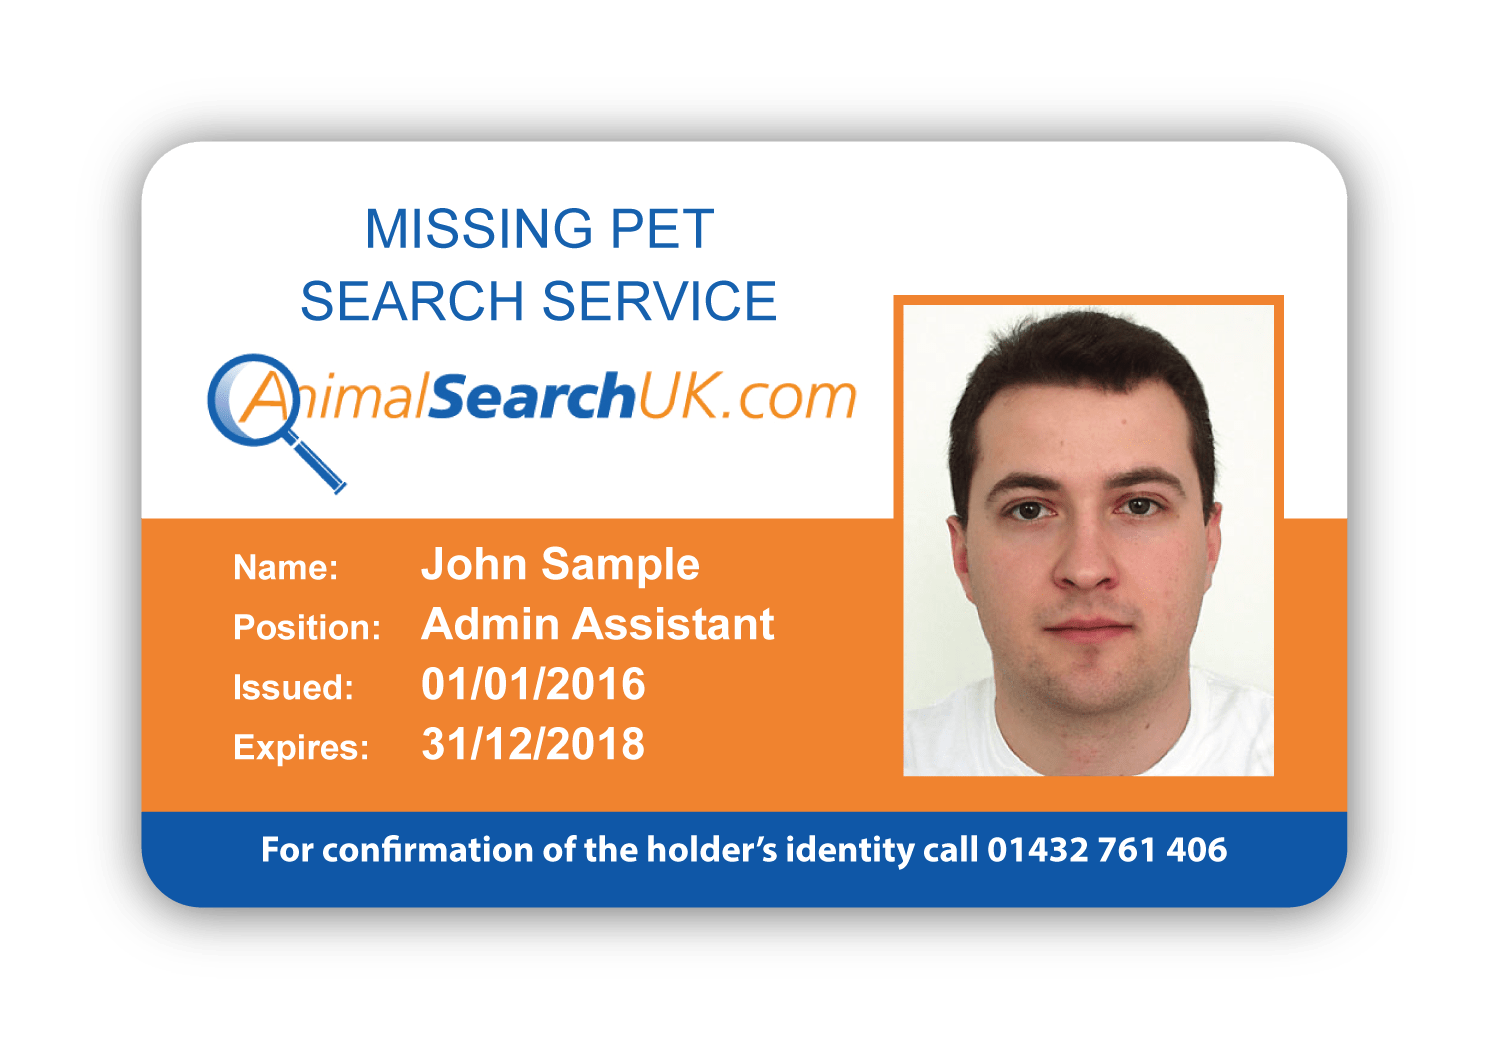 Animal Search UK Sample ID card